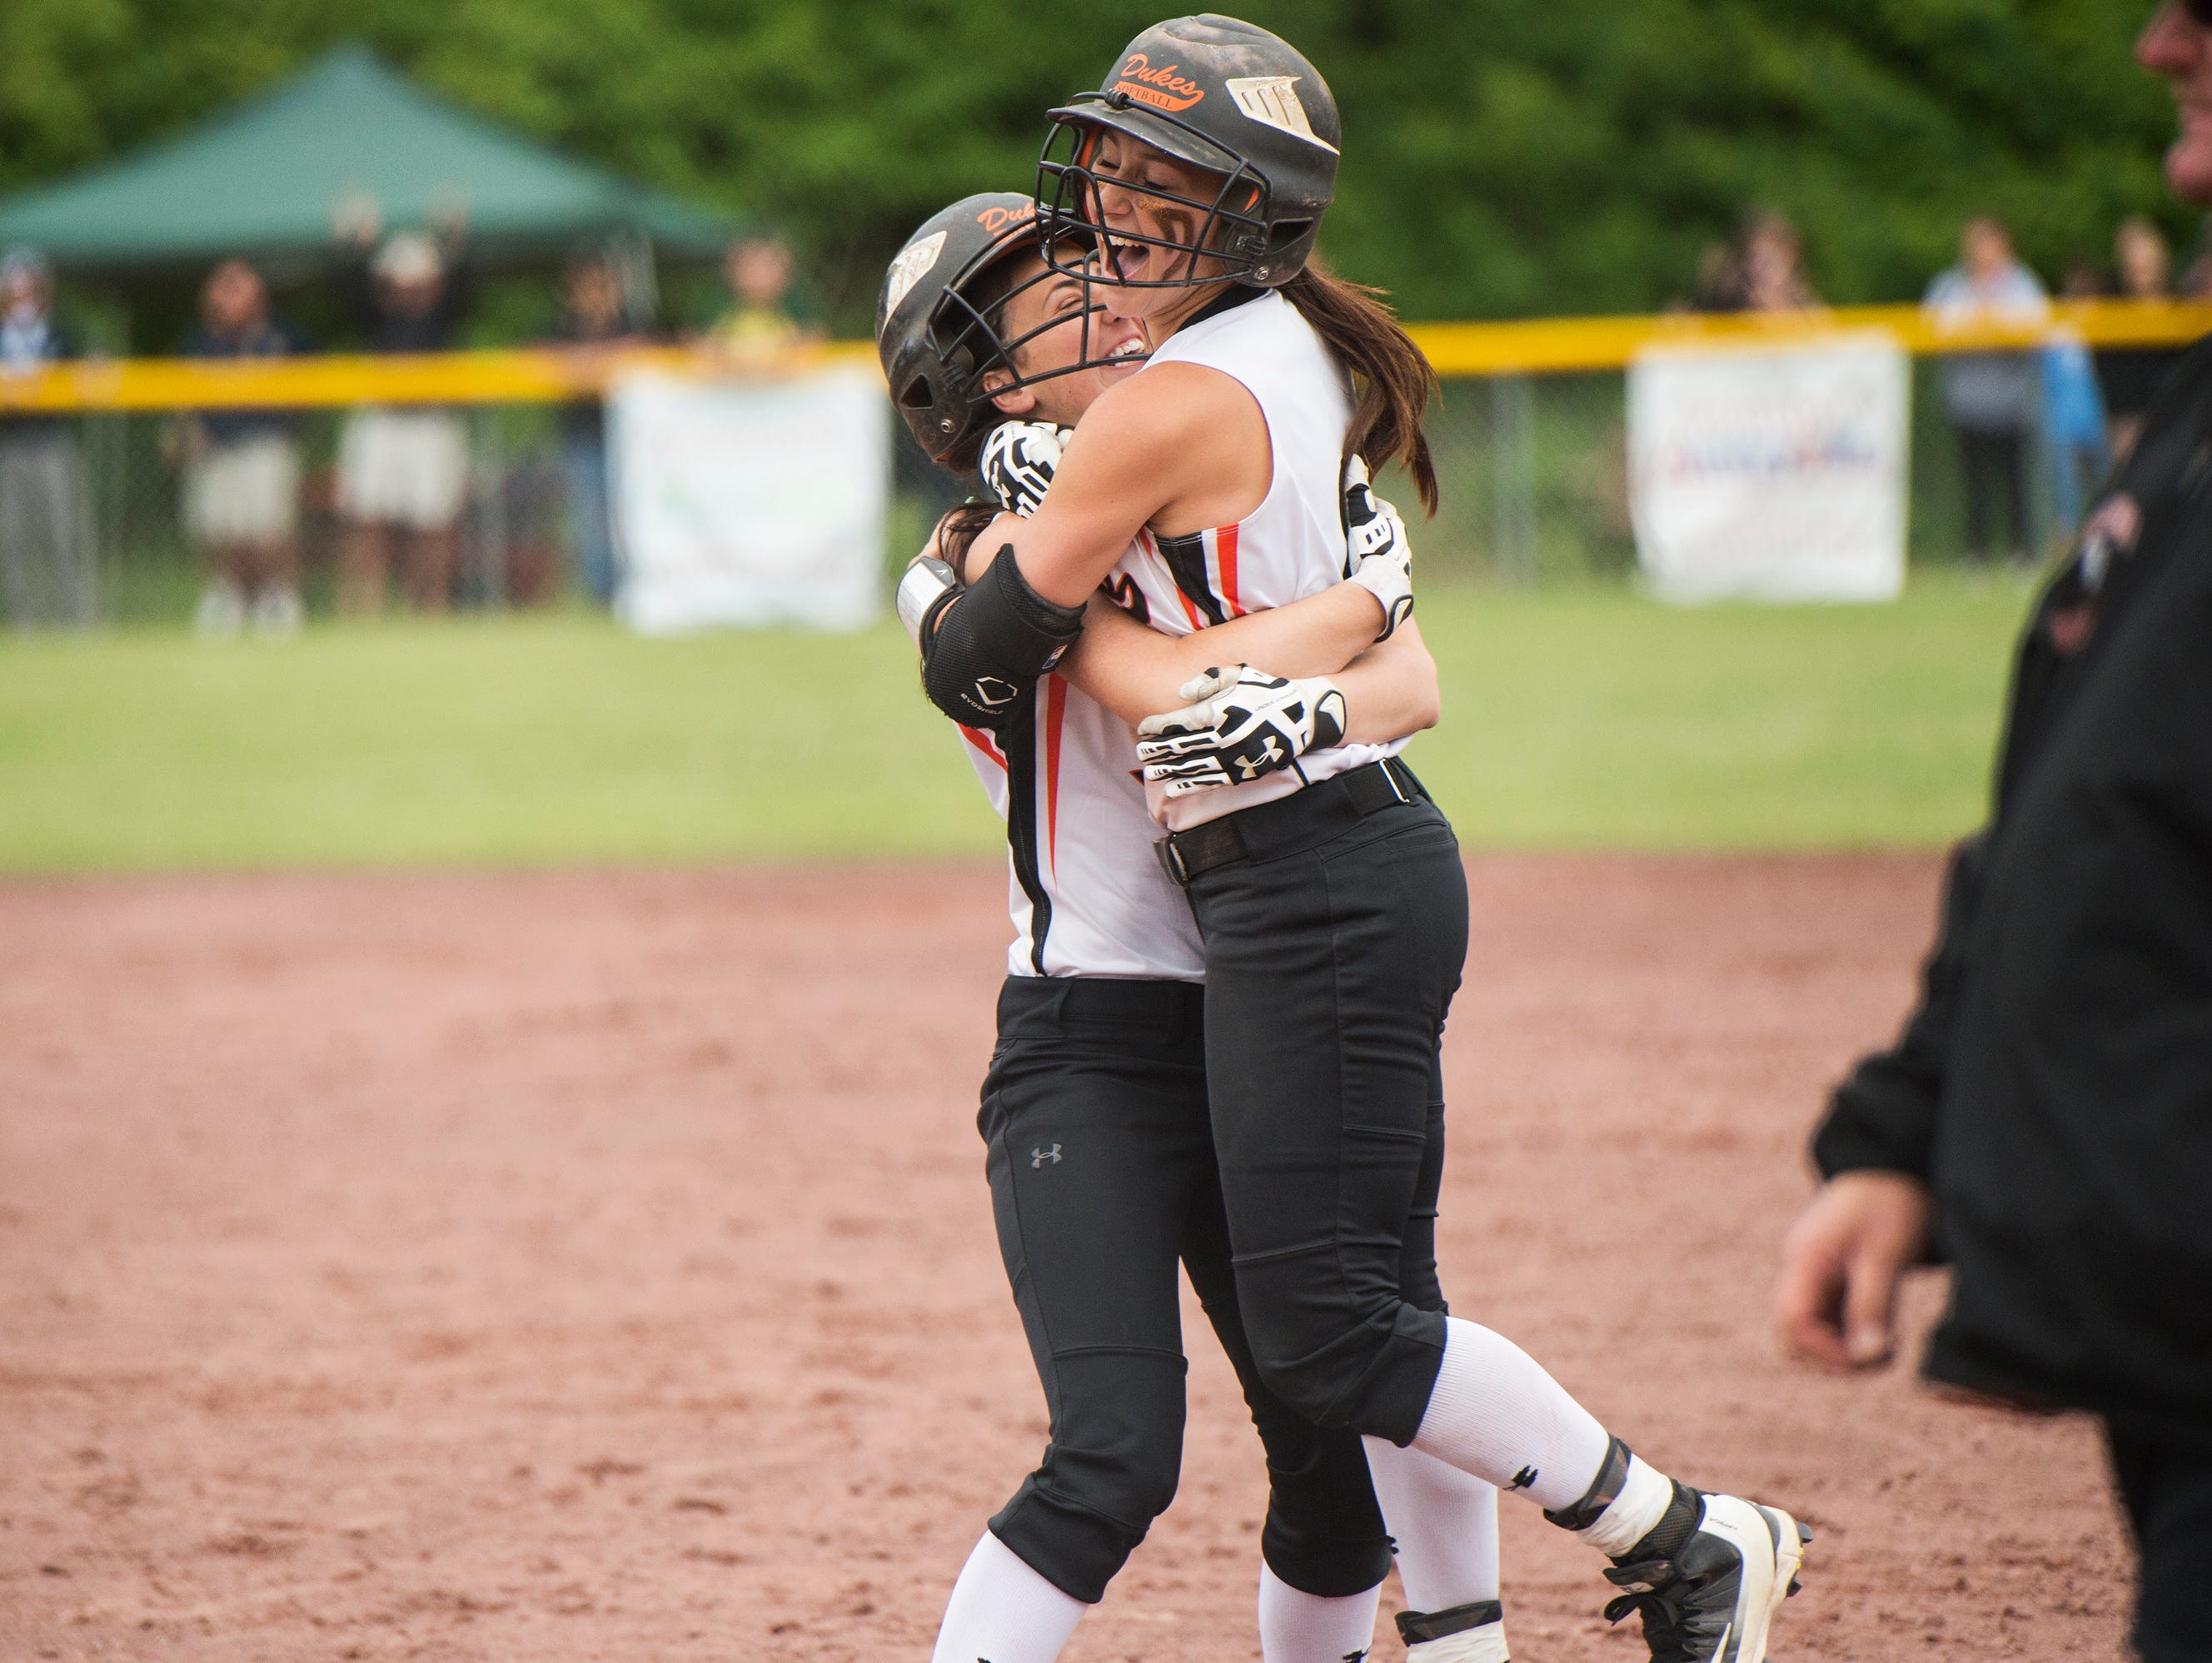 Marlboro High School's Taylor Felicello, left, hugs Ashley Votta after Votta hit the game-winning single in the bottom of the seventh inning in the Class B state title game against Windsor on June 12 in South Glens Falls.